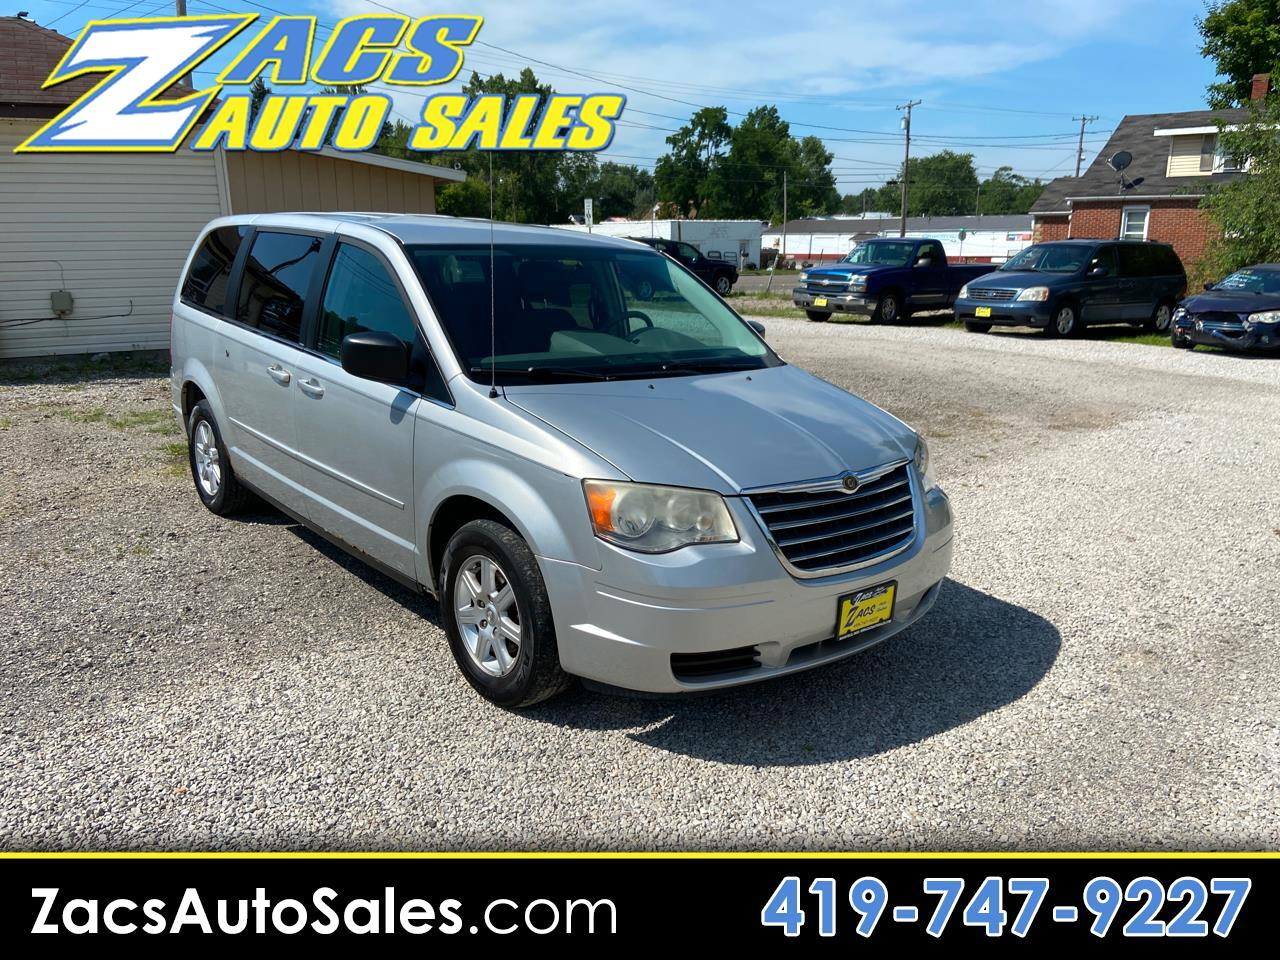 Chrysler Town & Country Voyager 2010